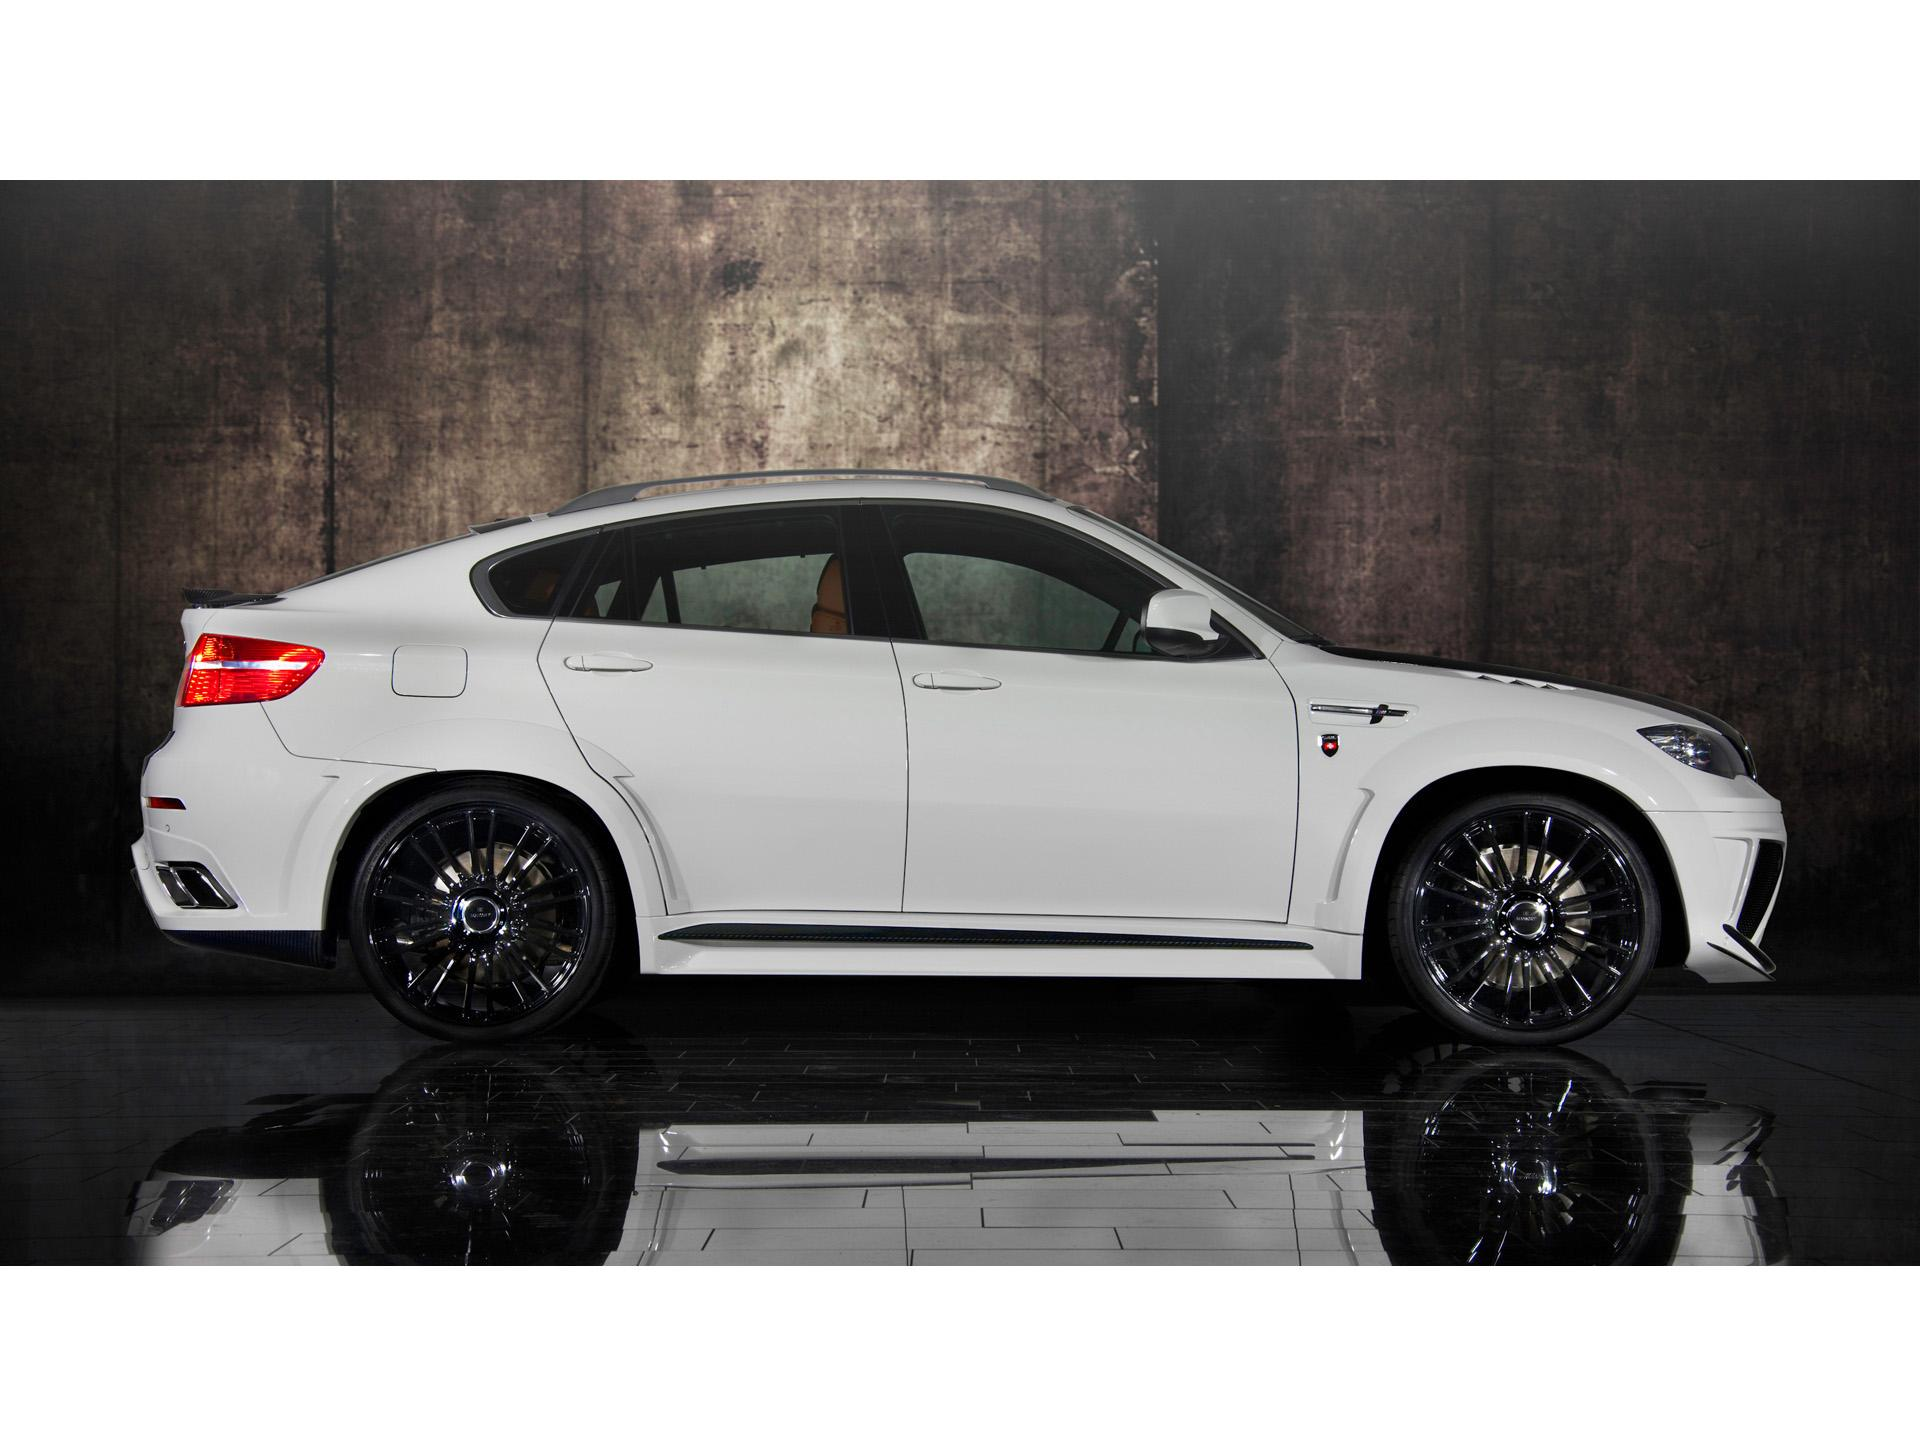 2011 Mansory X6 News And Information Conceptcarz Com